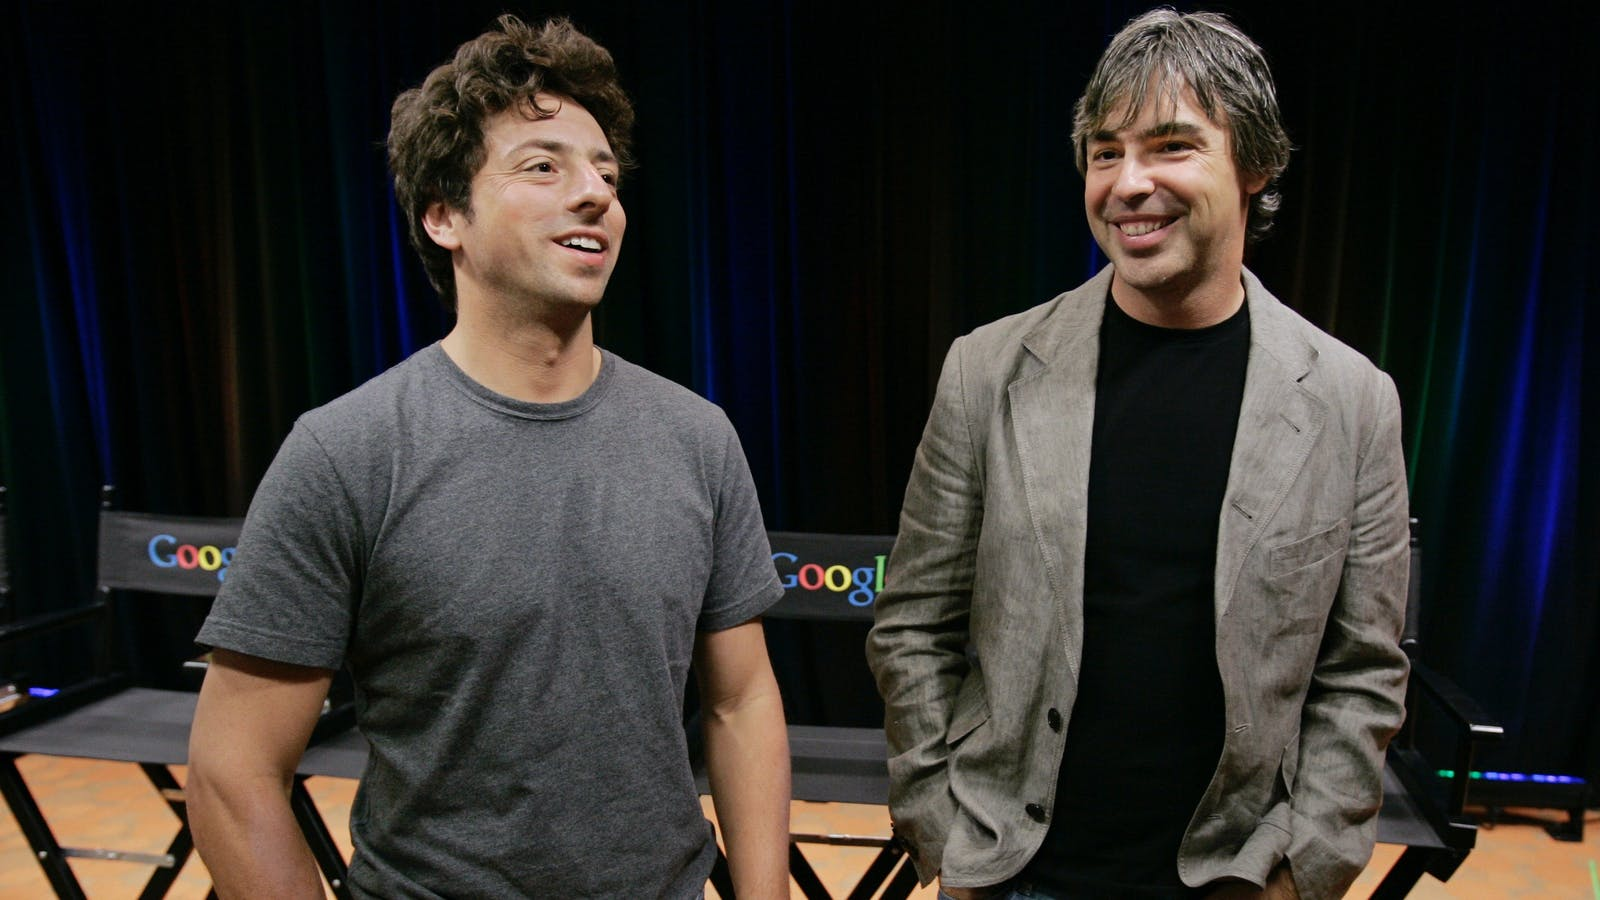 Sergey Brin and Larry Page. Photo by AP